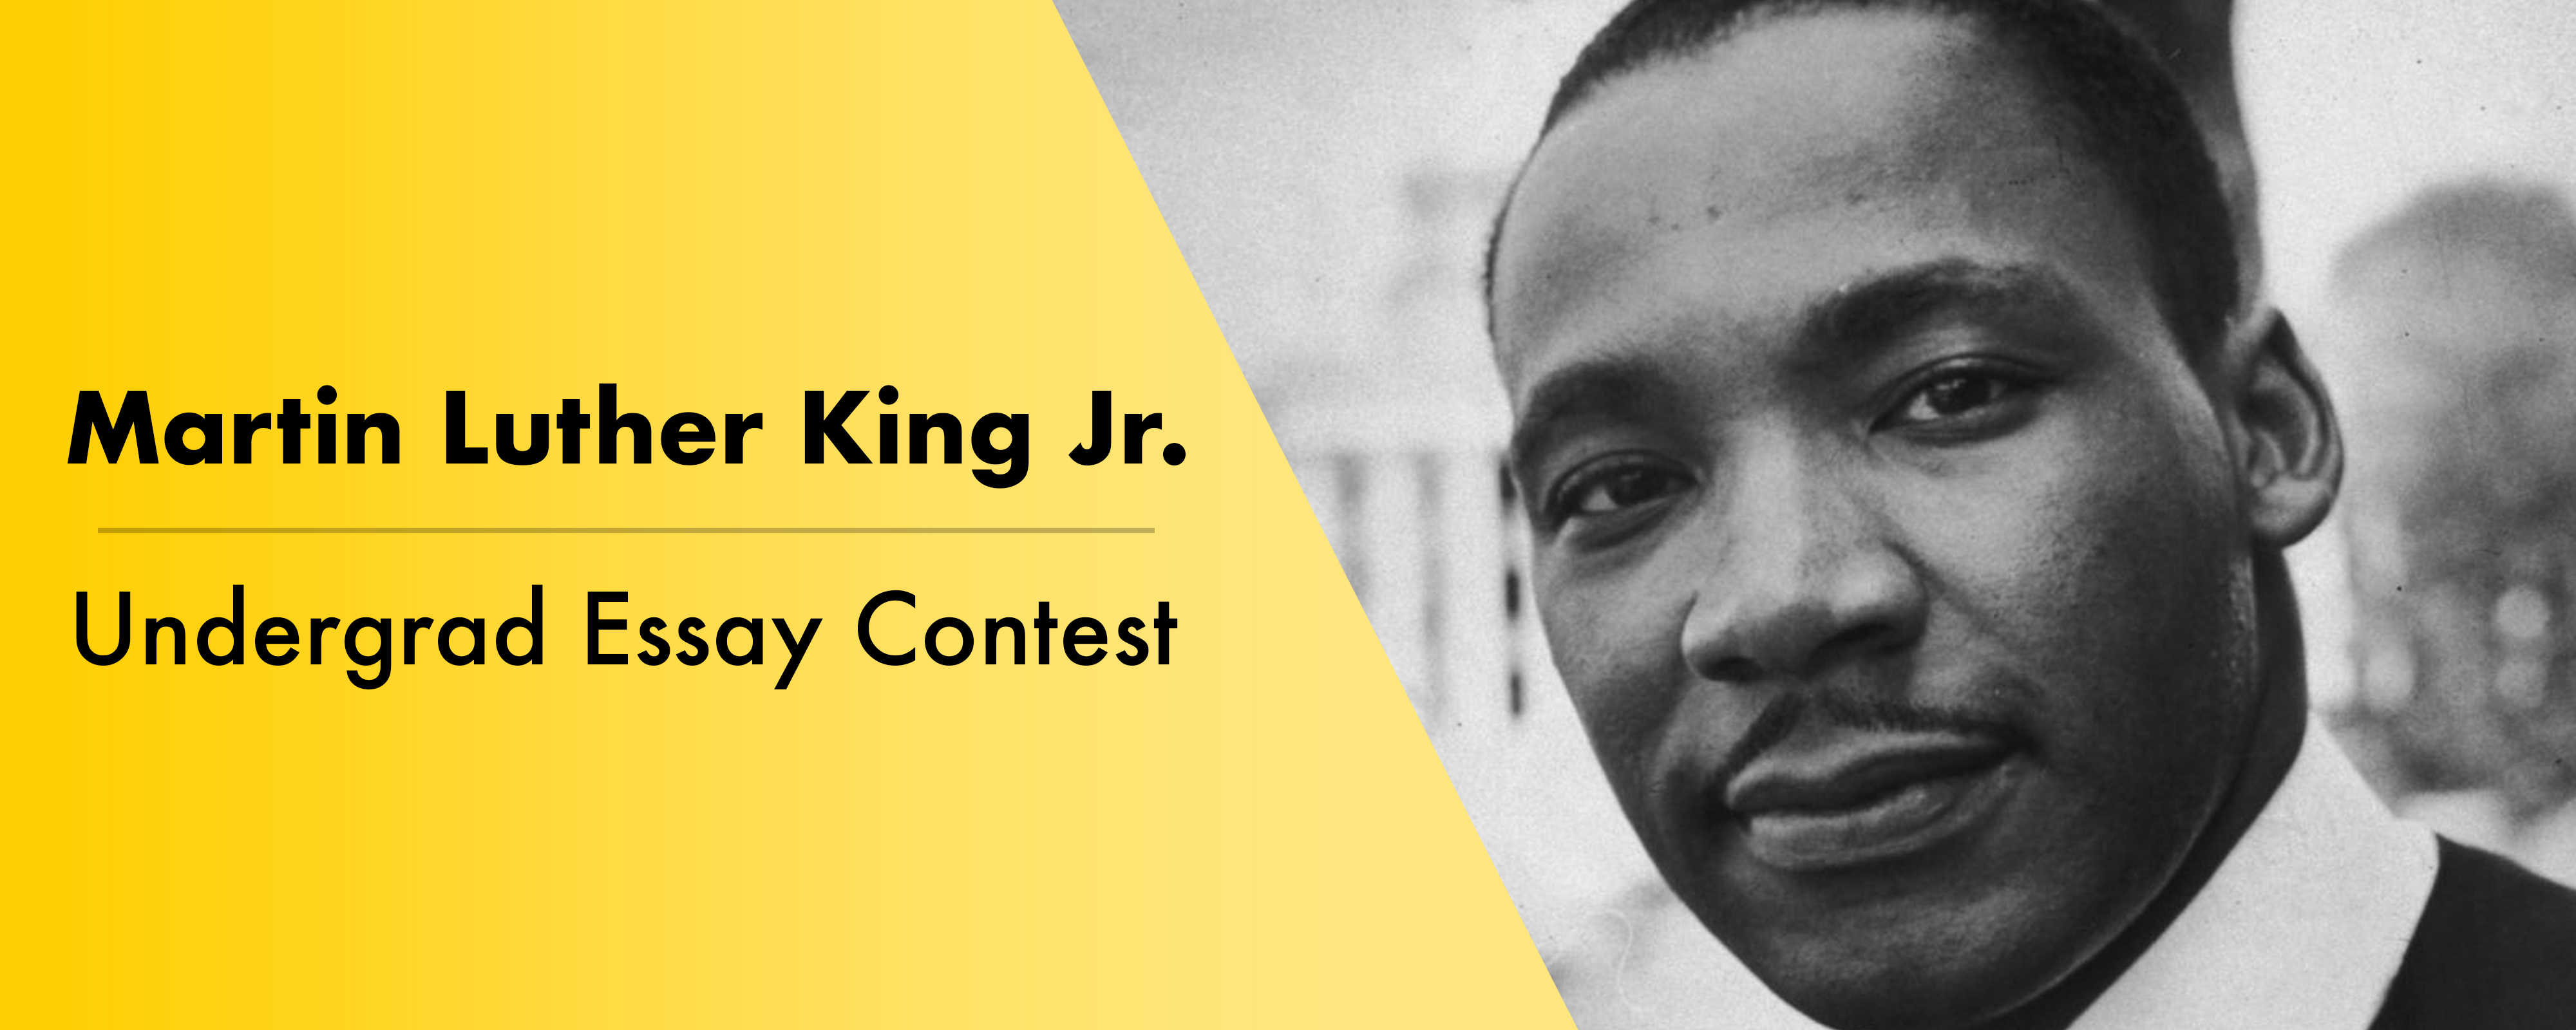 Martin Luther King Jr. Contest